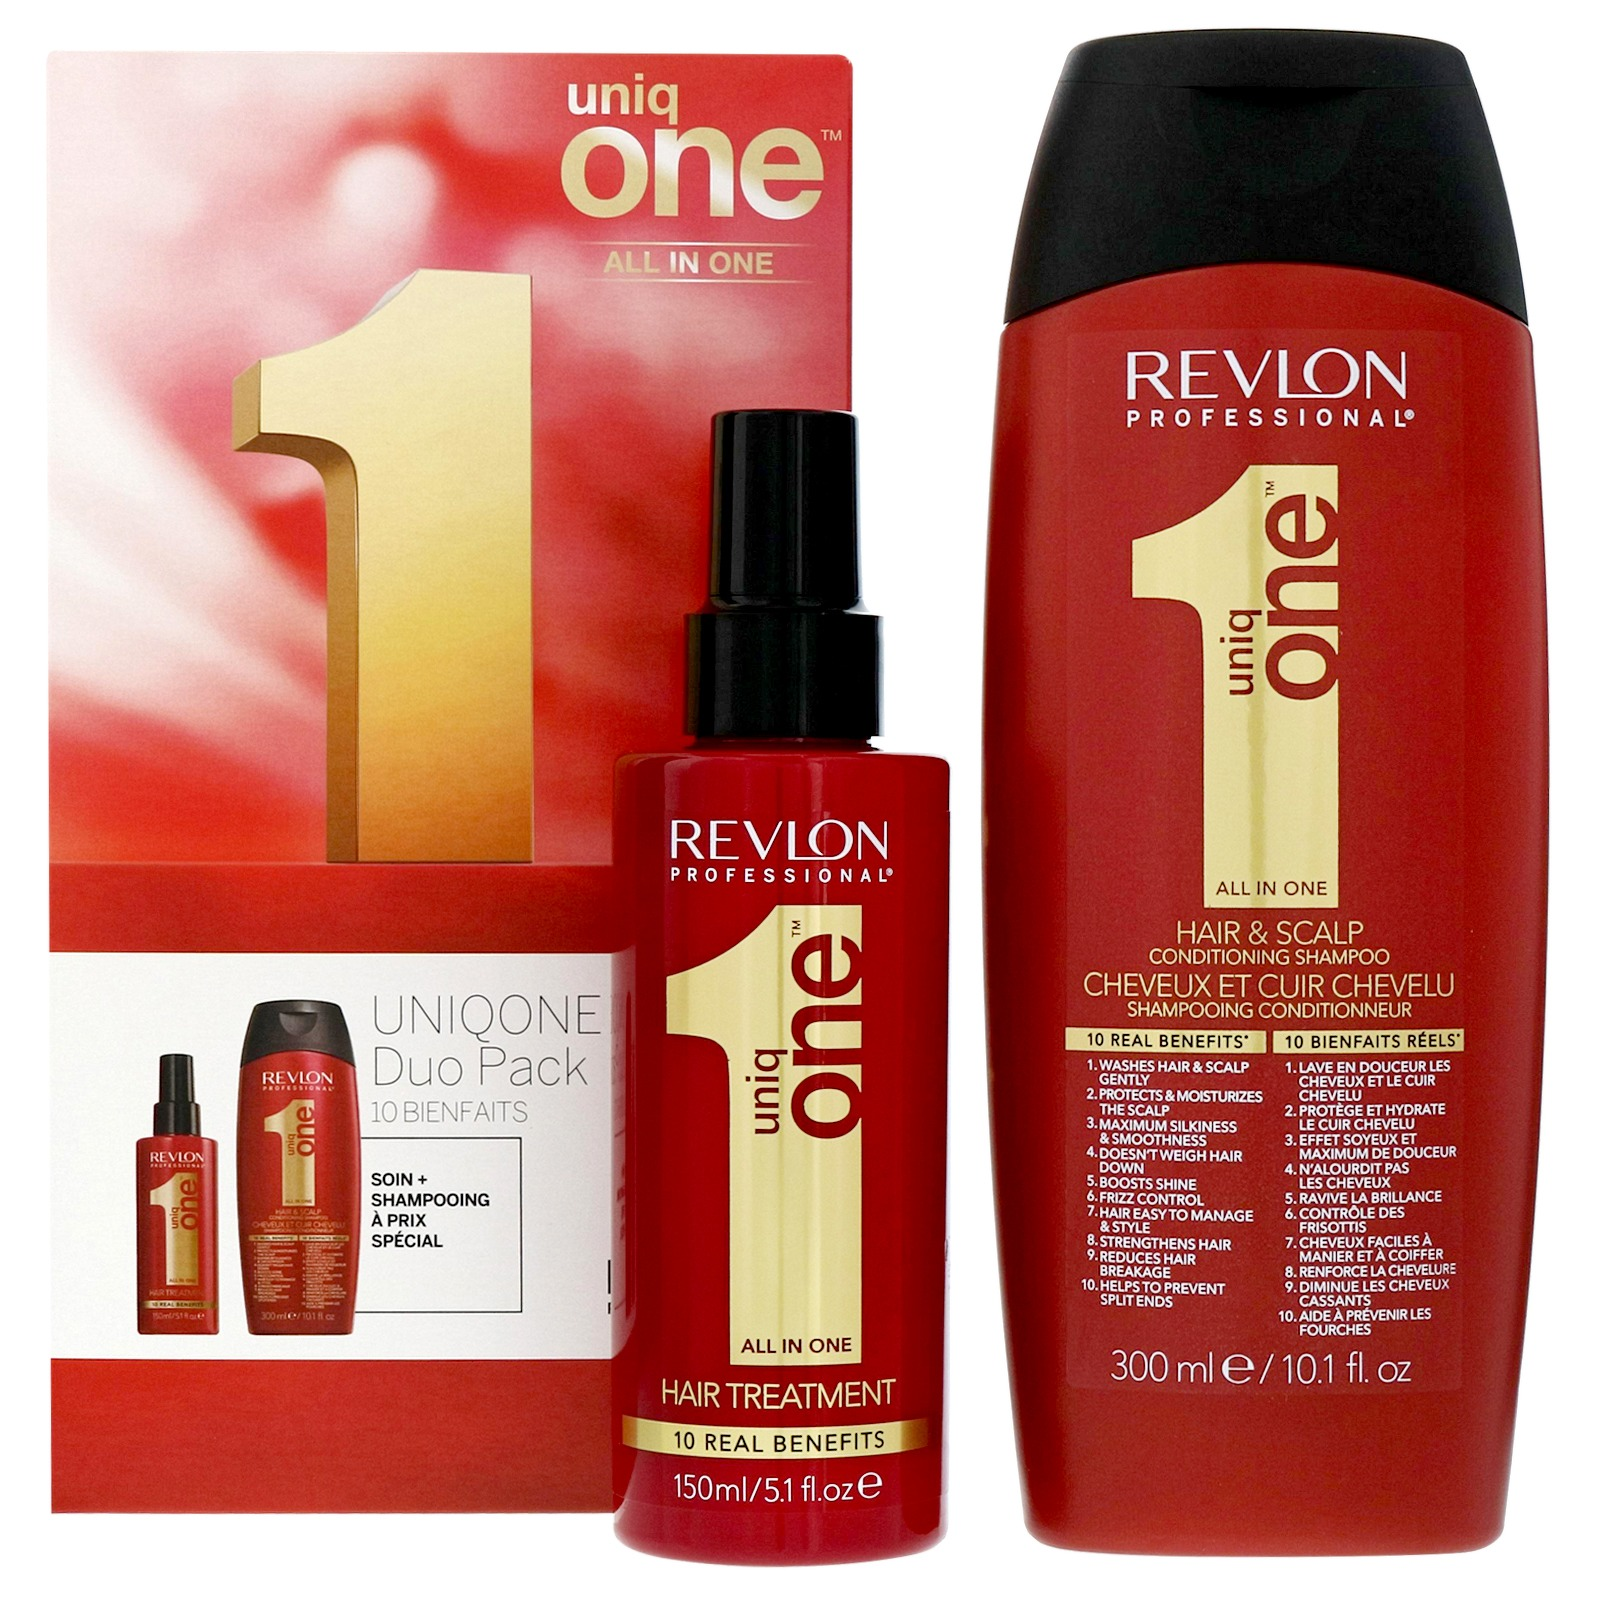 Revlon Professional Uniq One Classic Hair Treatment 150ml & Conditioning Hair & Scalp Shampoo 300ml